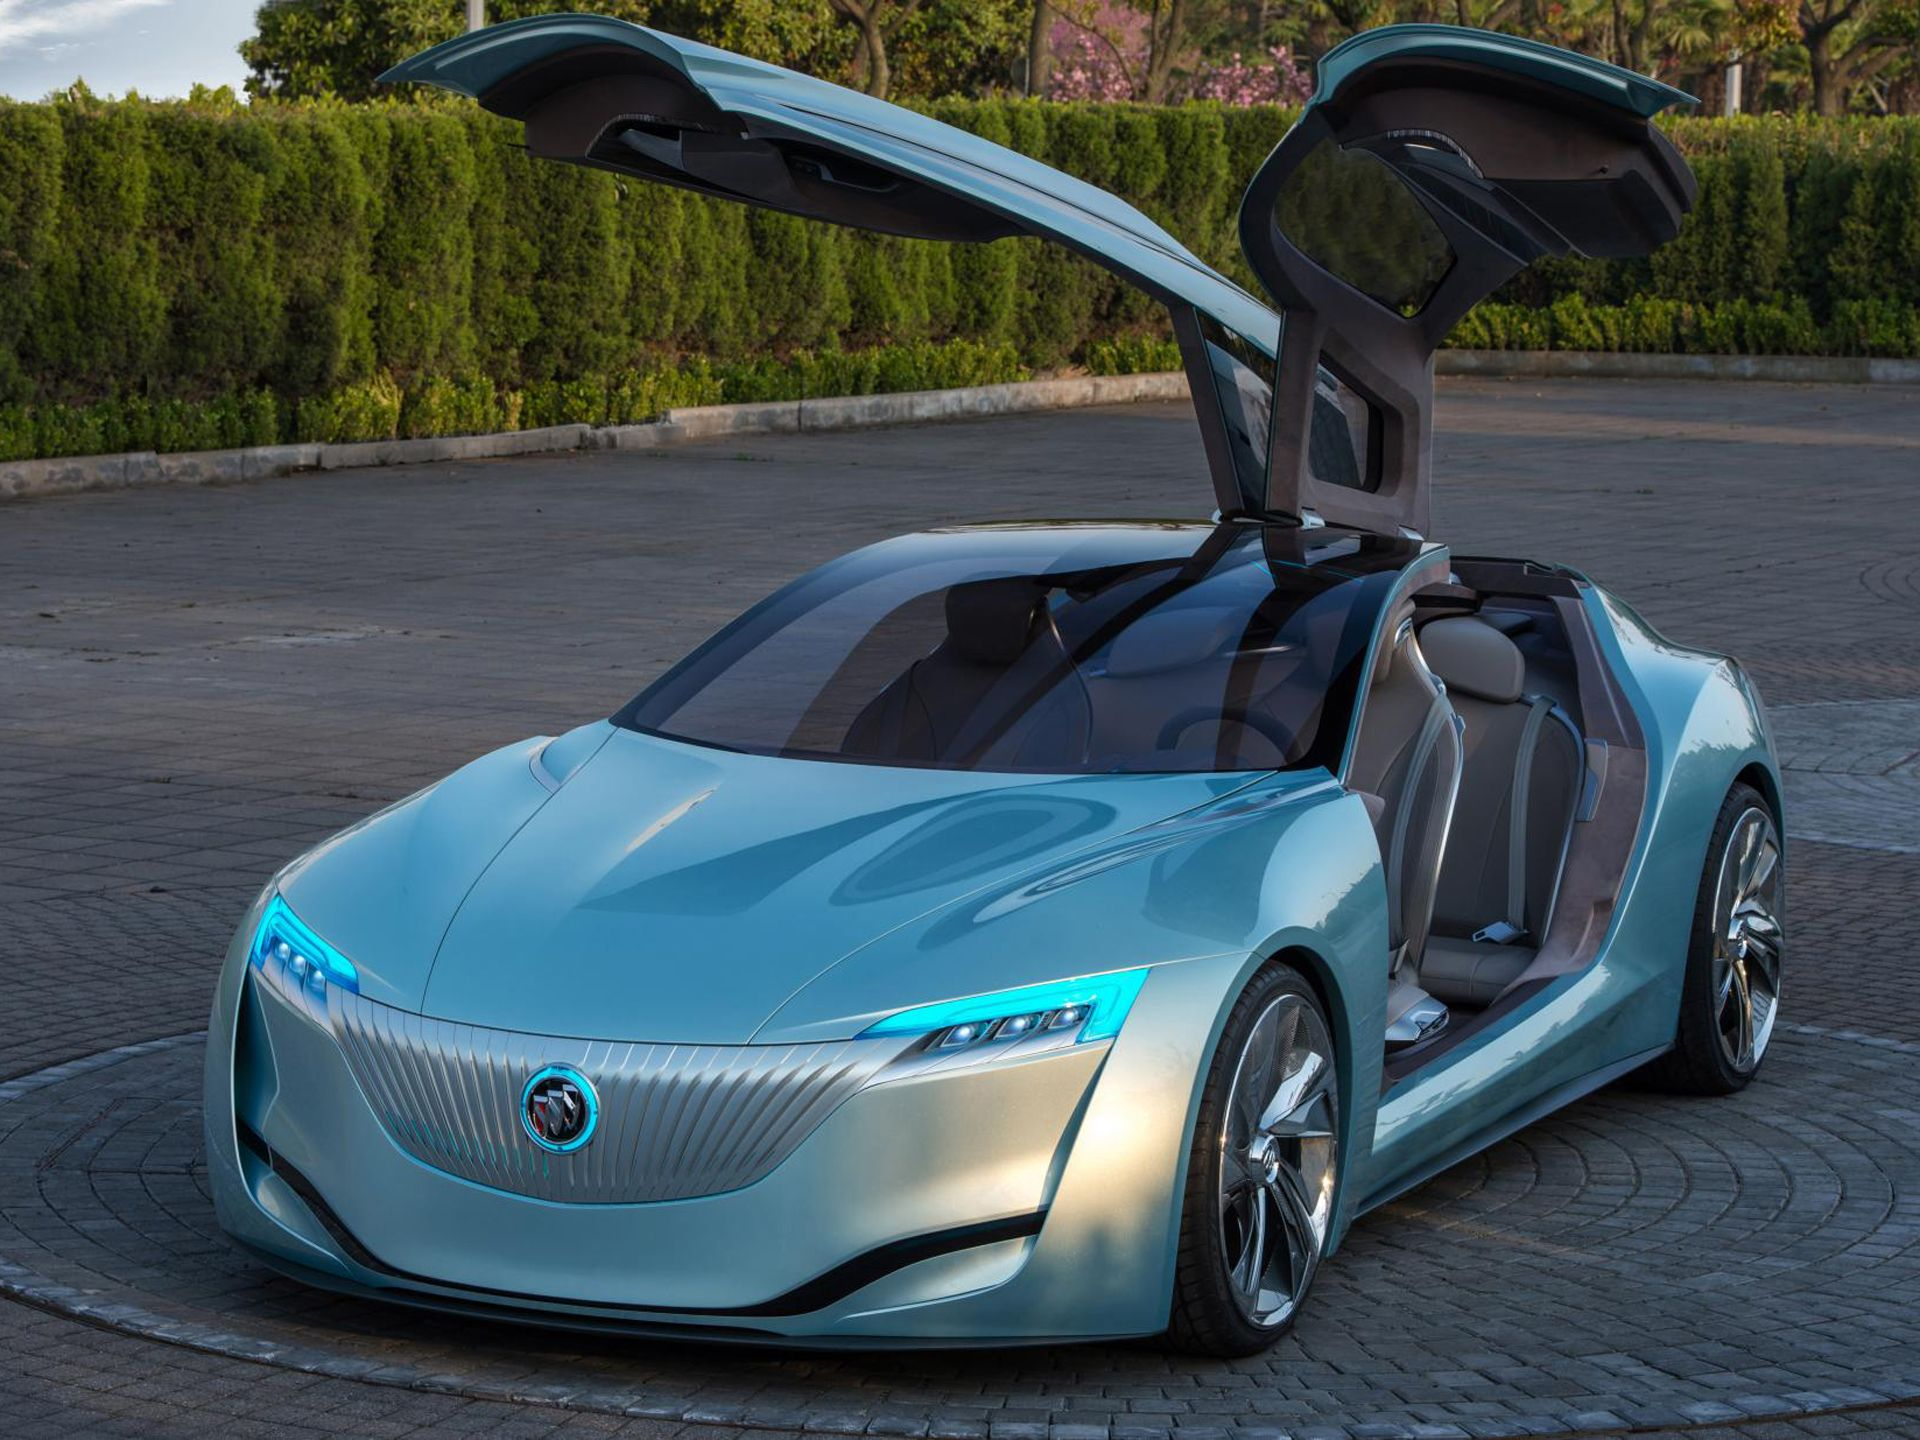 2013 Buick Riviera Coupe Concept | AmcarGuide.com ...